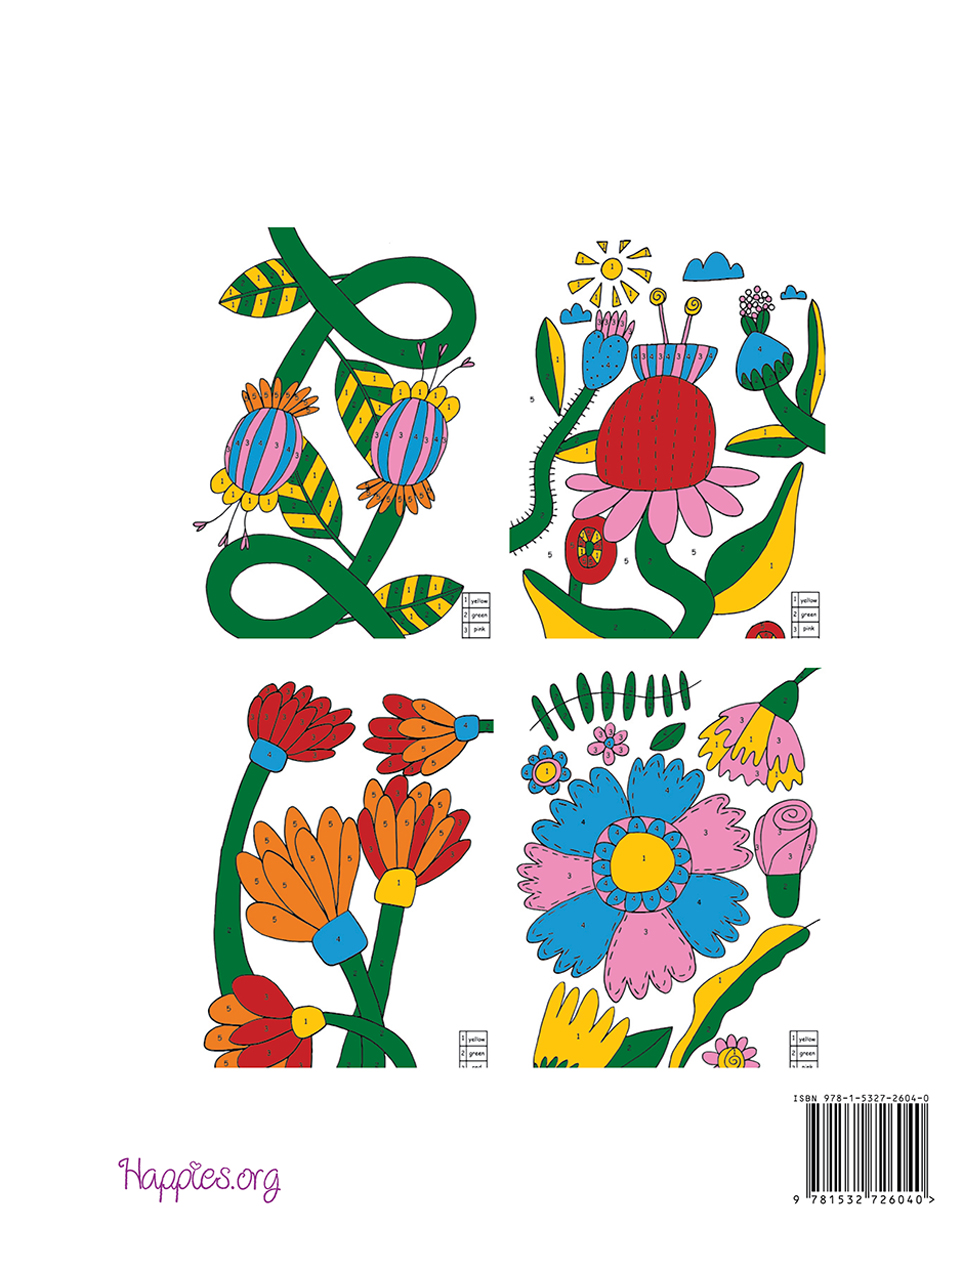 Happies - Colour by Numbers Coloring Book for Adults Flowers